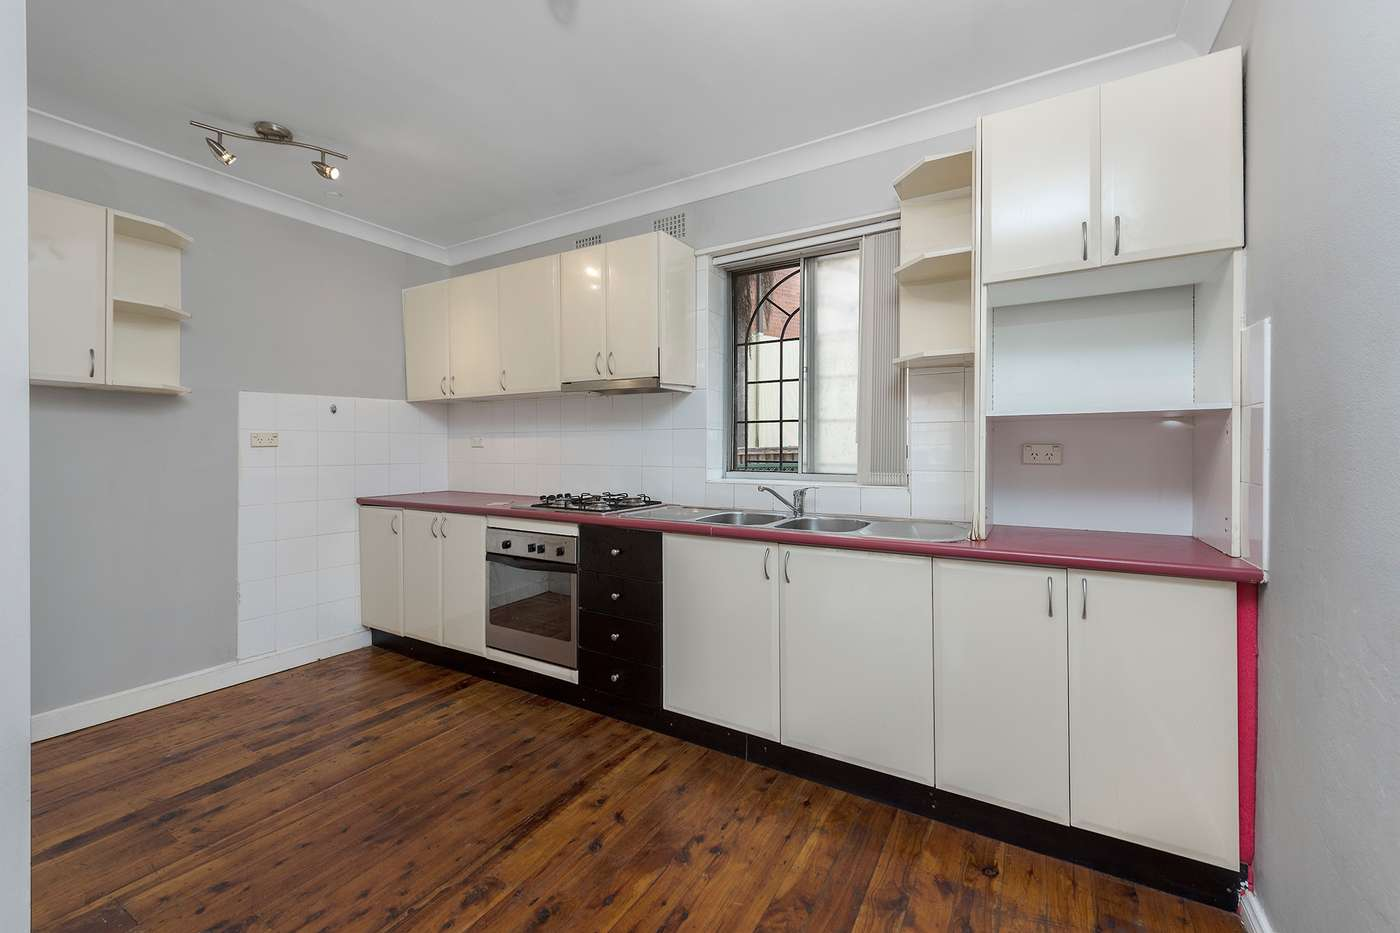 Main view of Homely apartment listing, 1/25 Marlene Crescent, Greenacre, NSW 2190